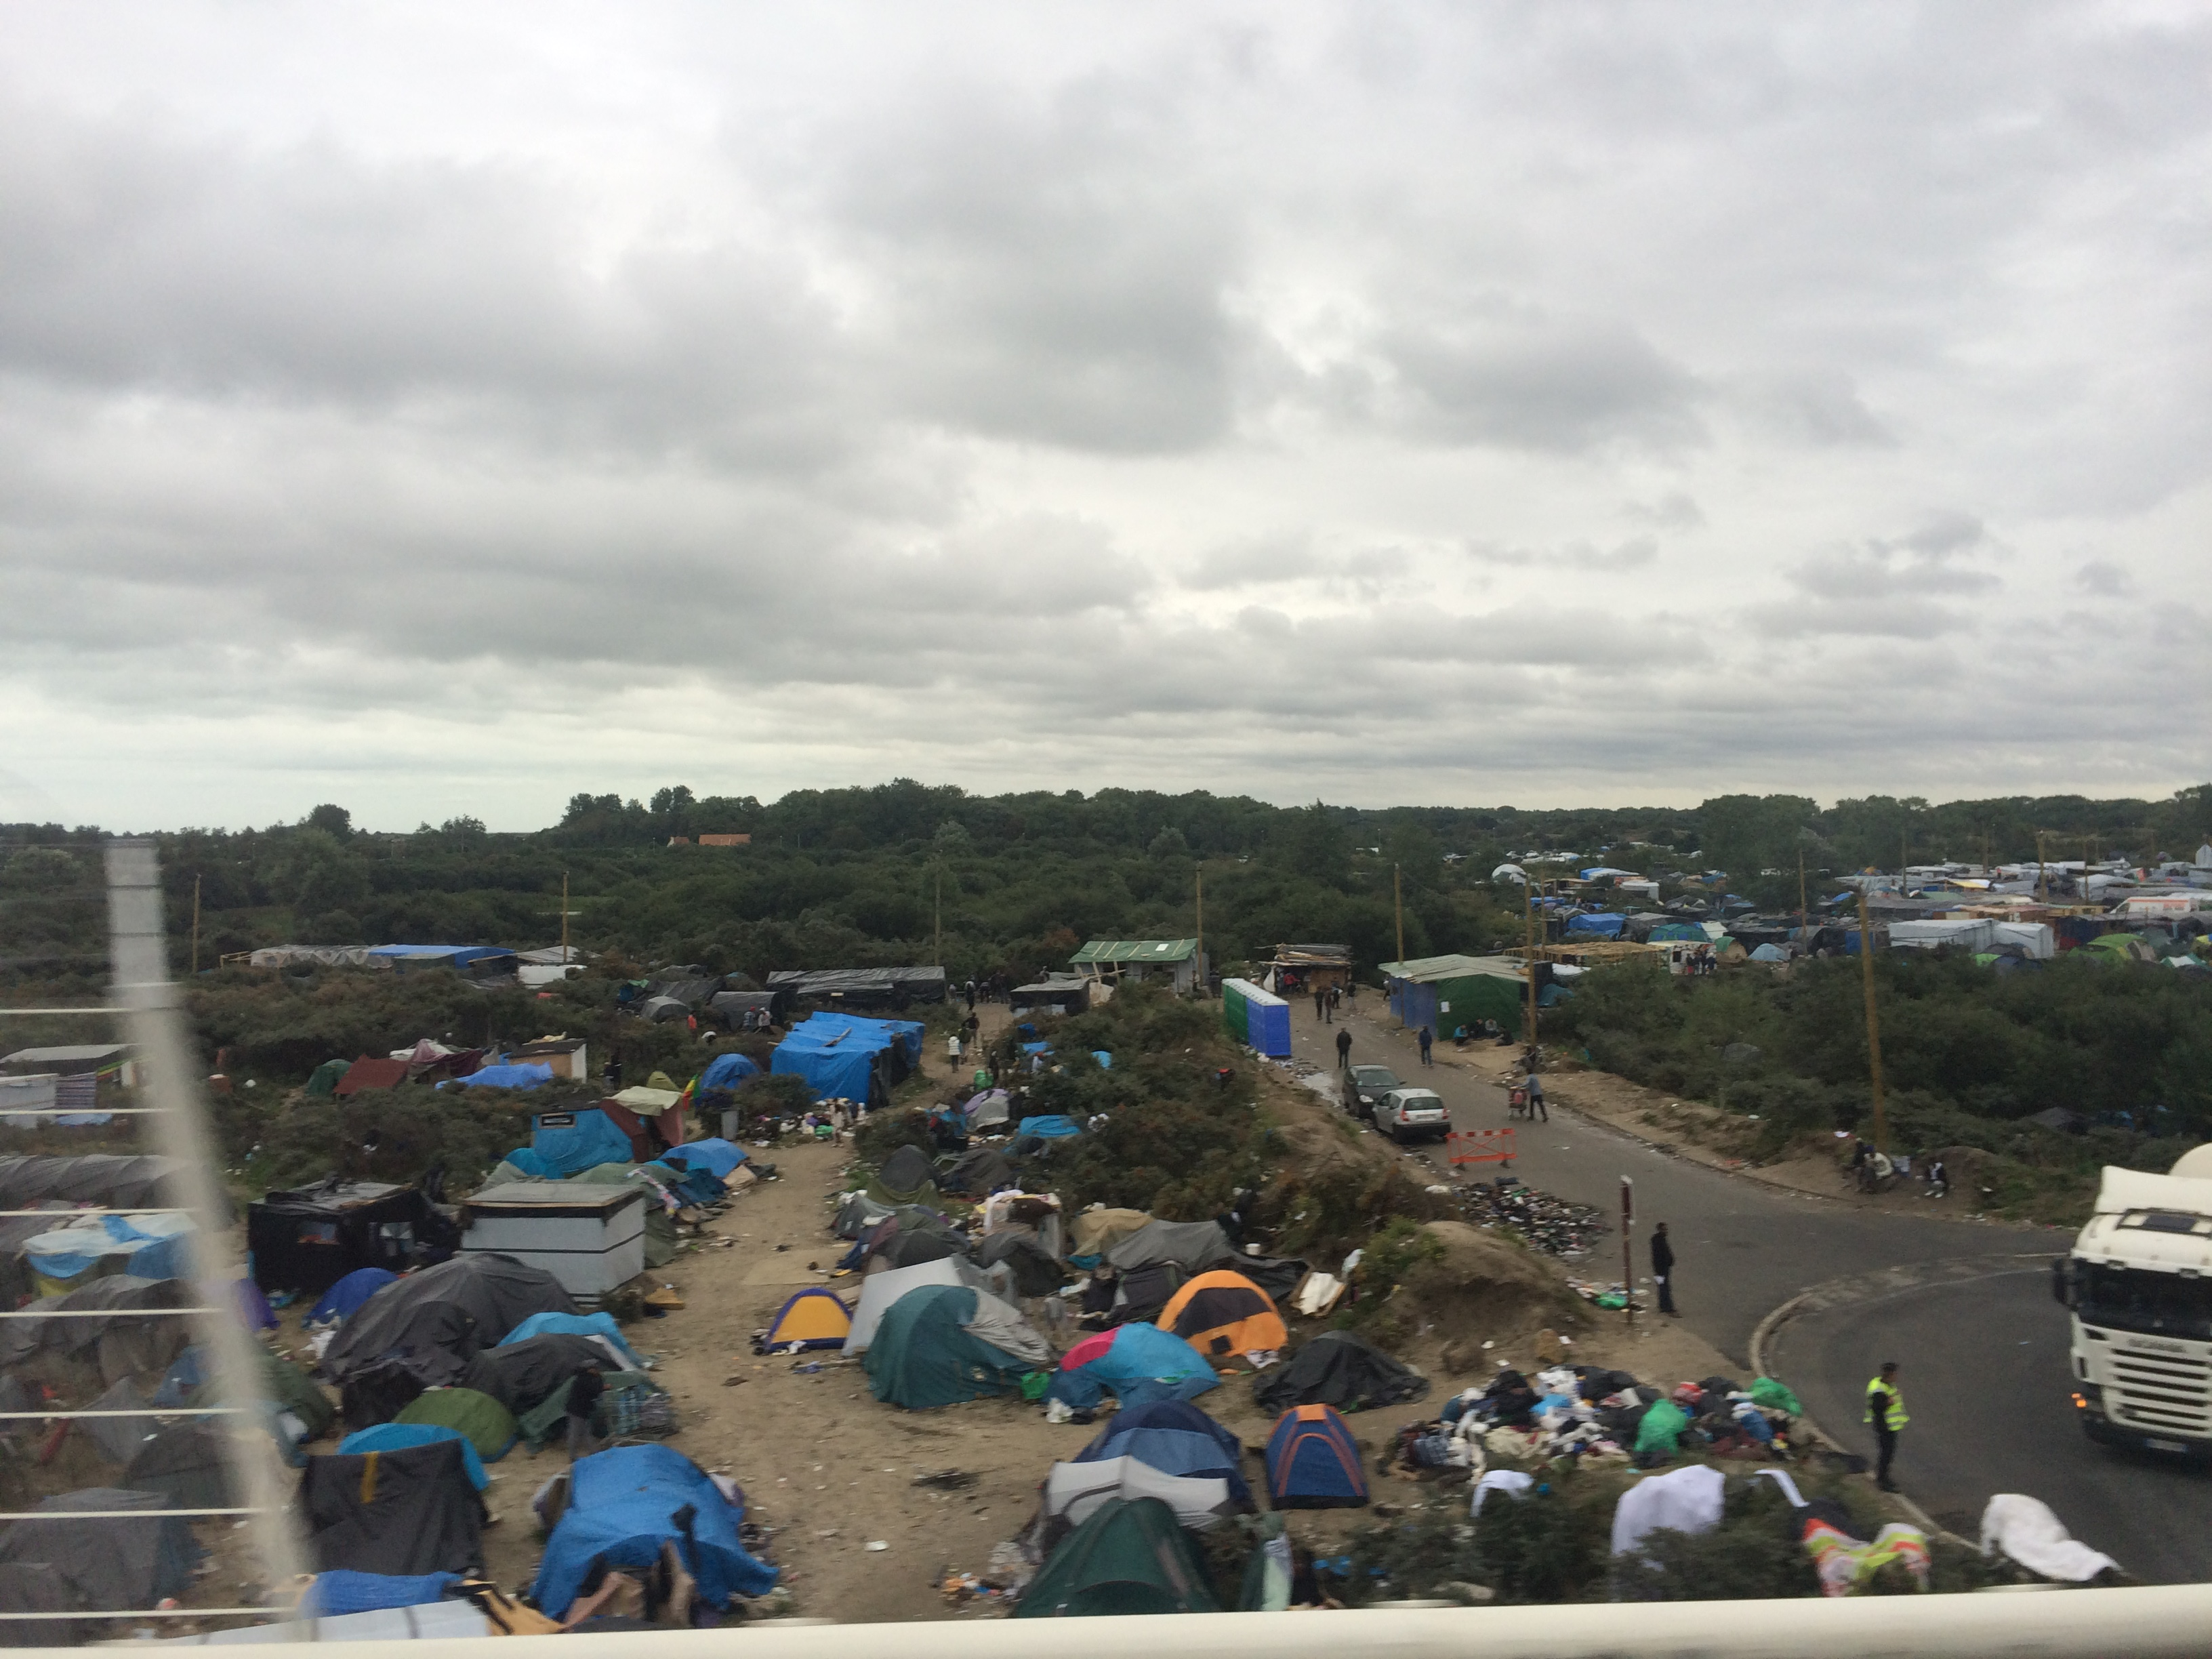 Migrant village in Calais